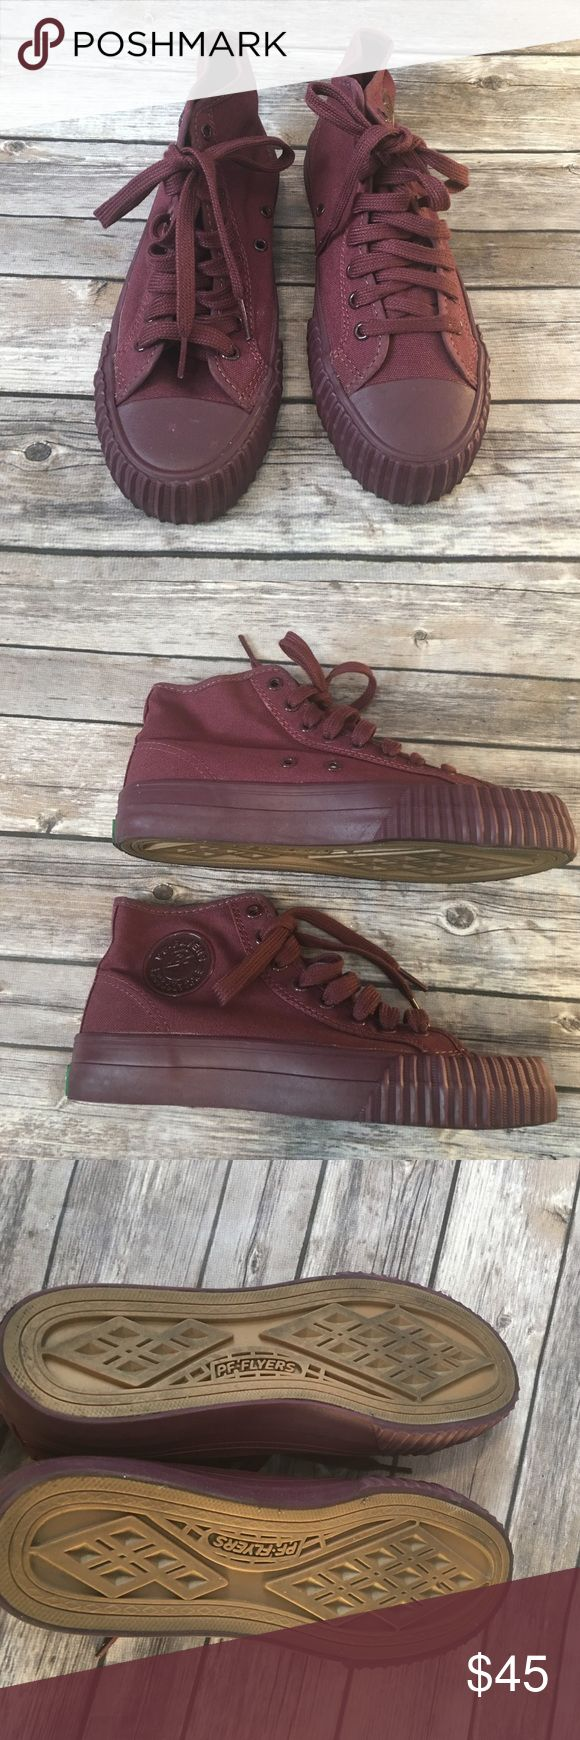 Burgundy PF Flyers Men's PF-Flyers size 6 women can wear them they are 7 1/2 in women's size PF Flyers Shoes